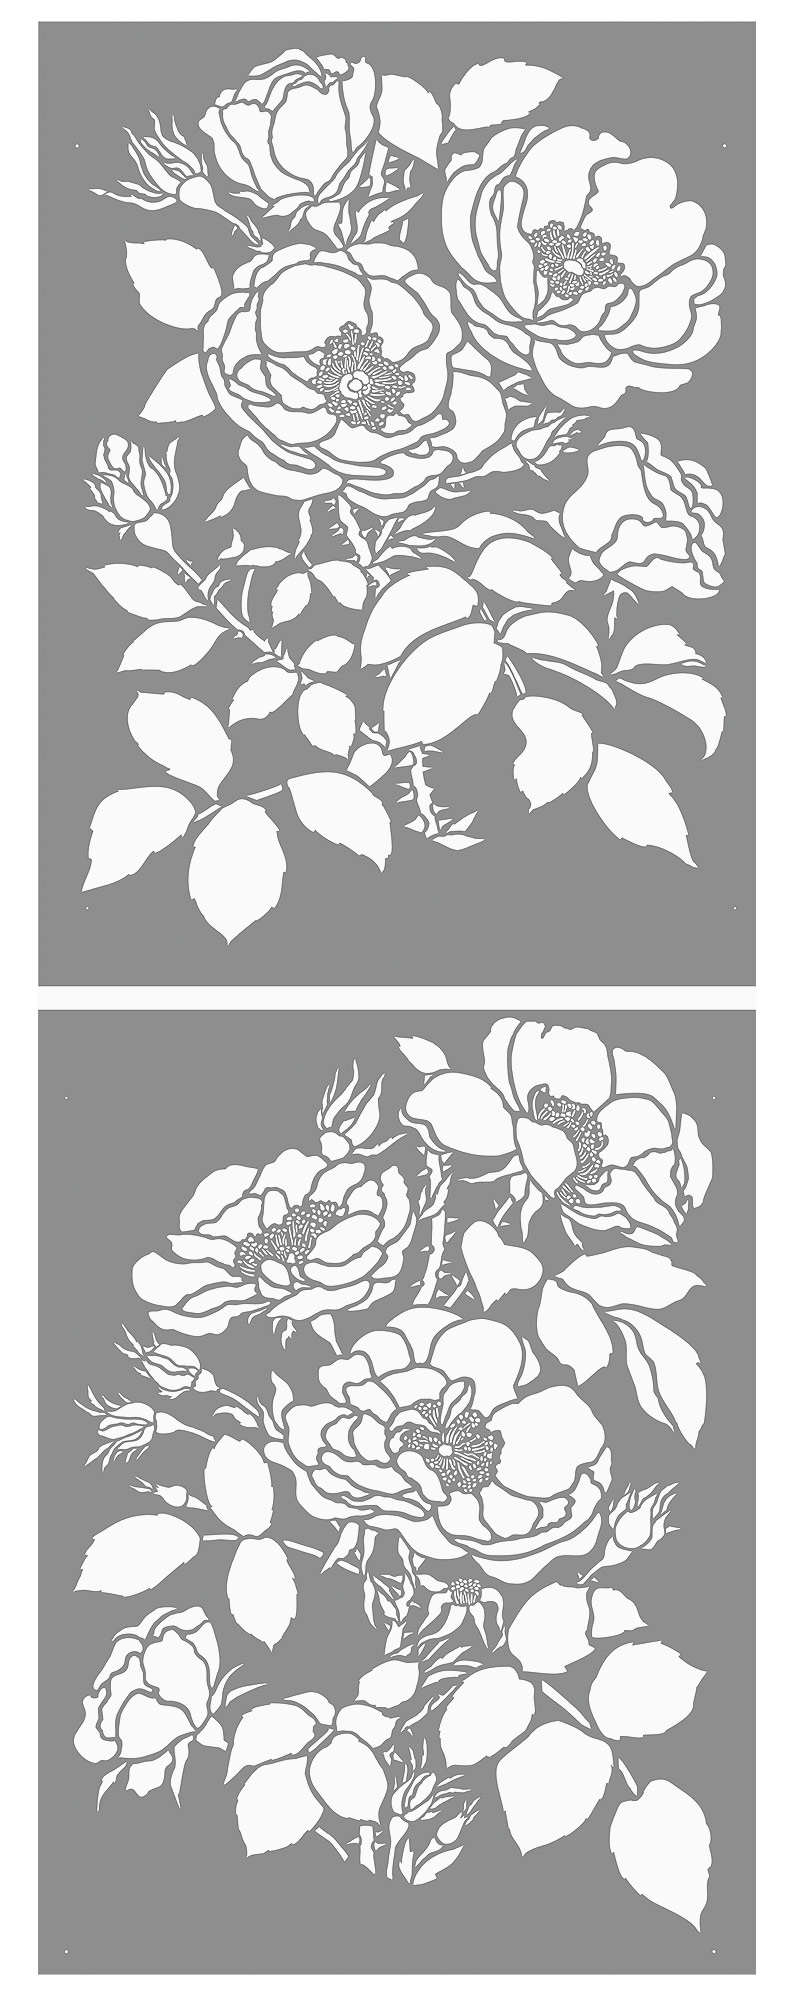 It's just a graphic of Ambitious Flower Stencils Printable